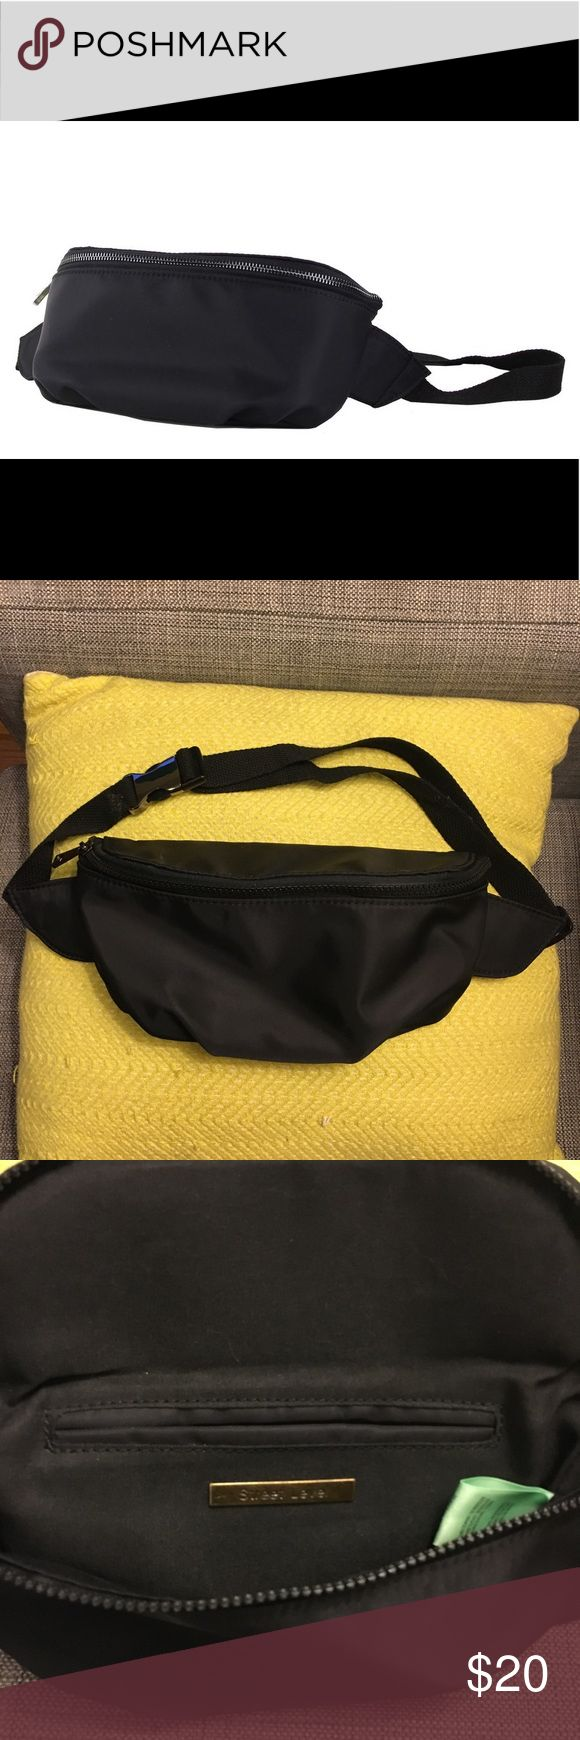 Street Level nylon fanny pack Black nylon fanny pack with adjustable buckle belt. One interior pocket and log plate. Supet sturdy. Fanny packs are making a huge comeback and i love this for concerts, music festivals or (from a practical viewpoint) sport activities. This bag is very simple so its easy to mix in to your wardrobe! Brand new and never worn, although i dont actually have a tag on it. Street Level Bags